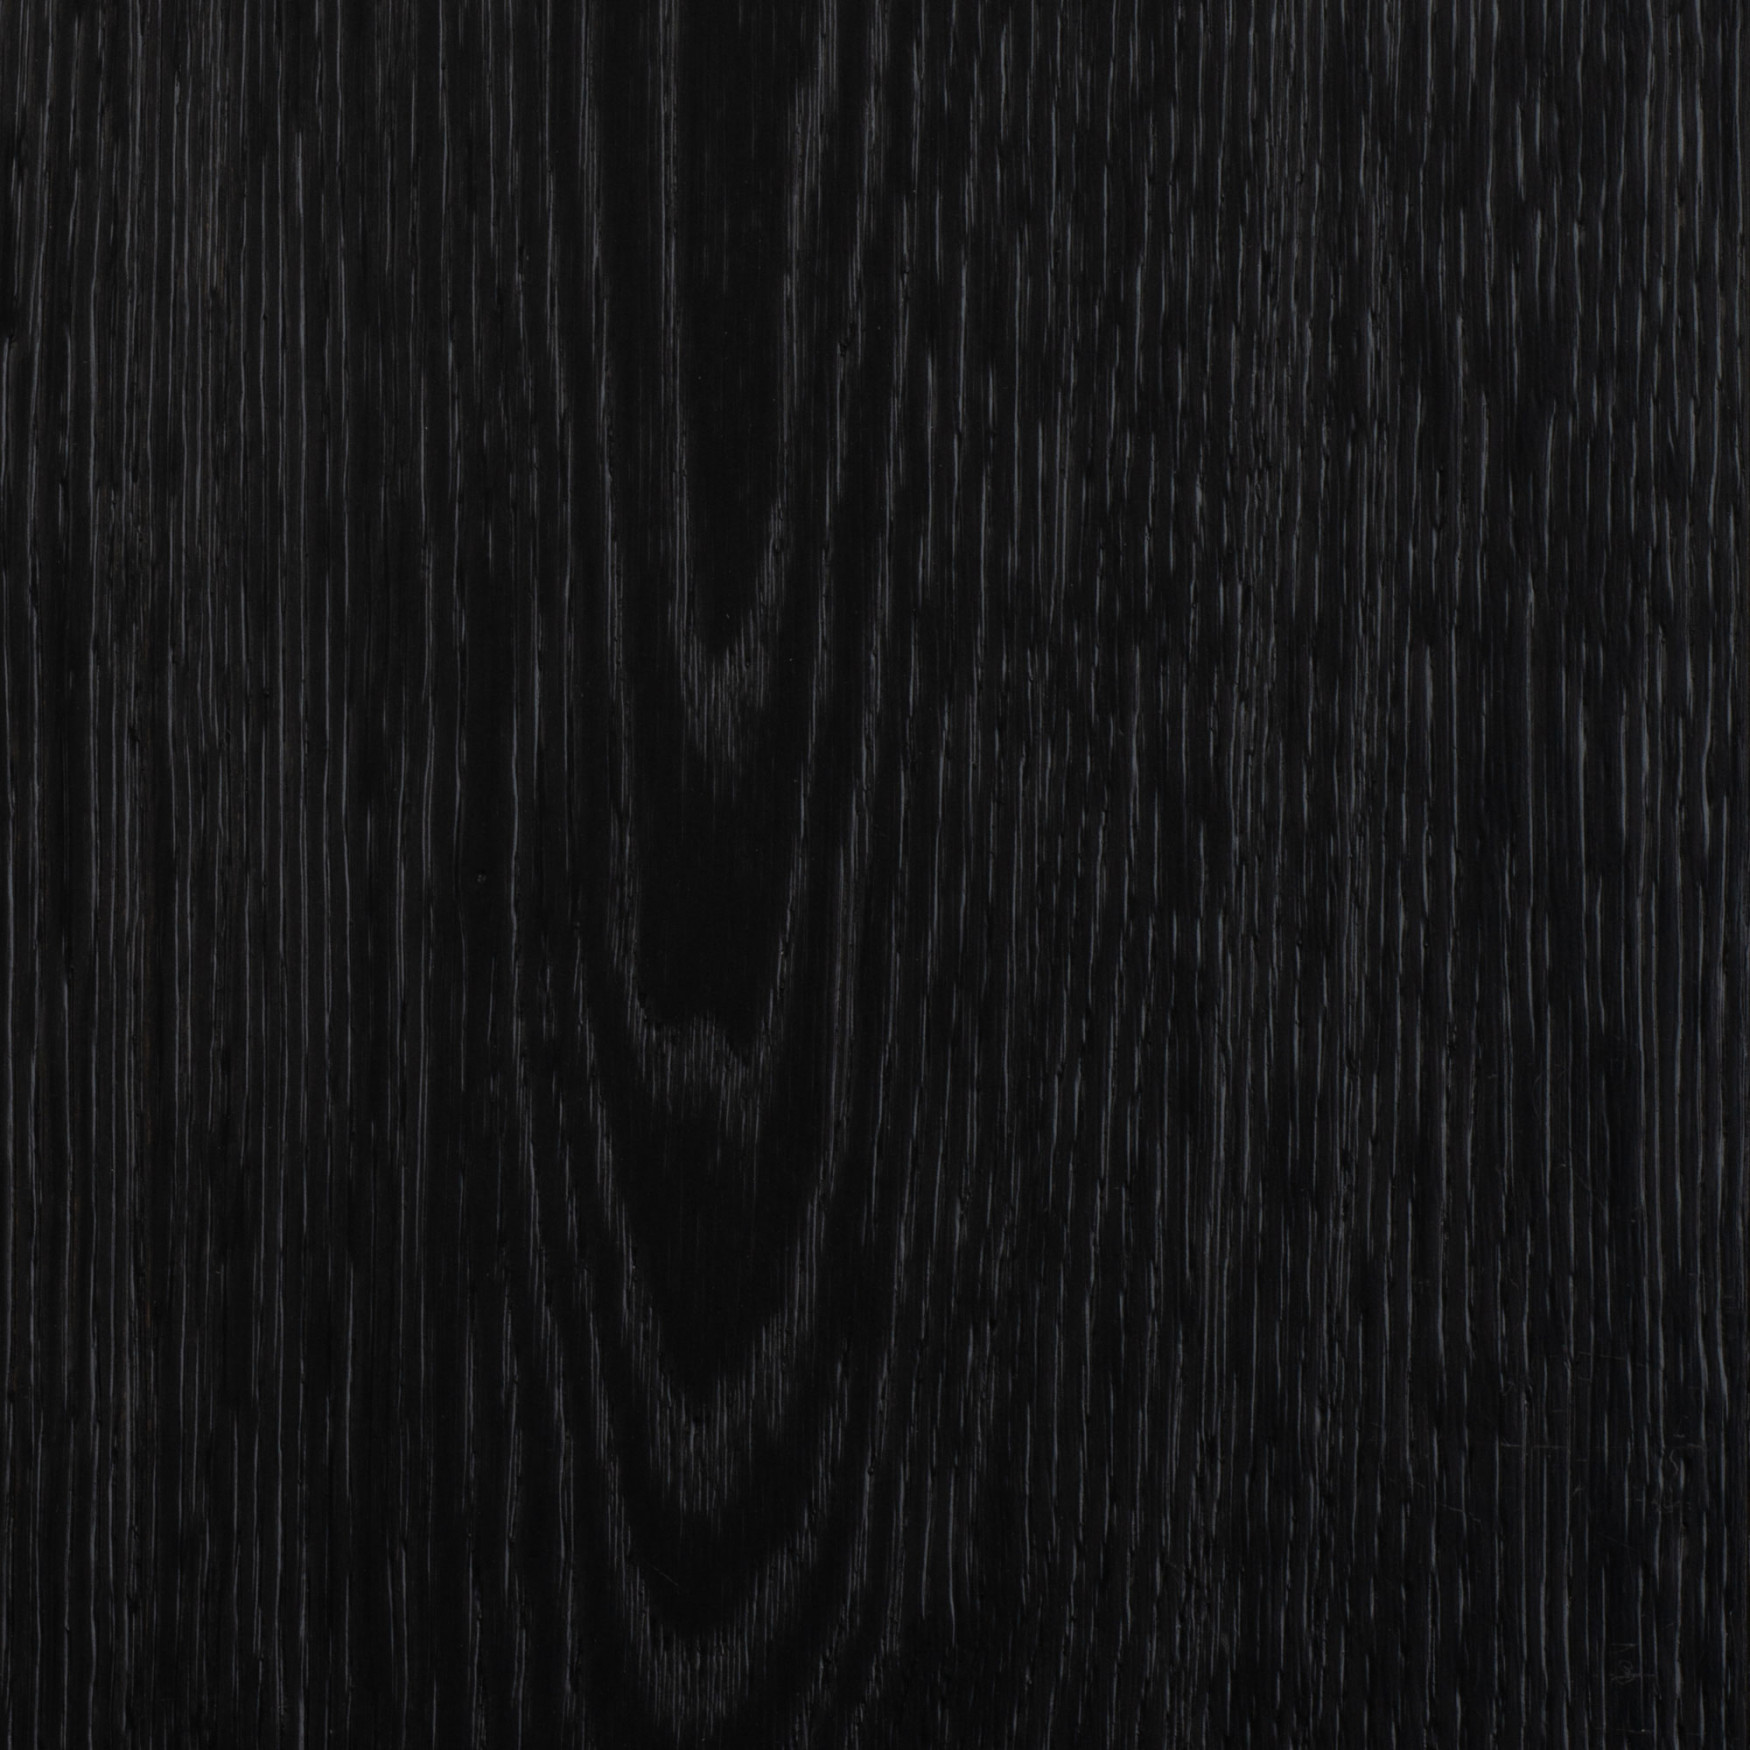 Element7-wide-plank-samples-Black-Oak-10g-2